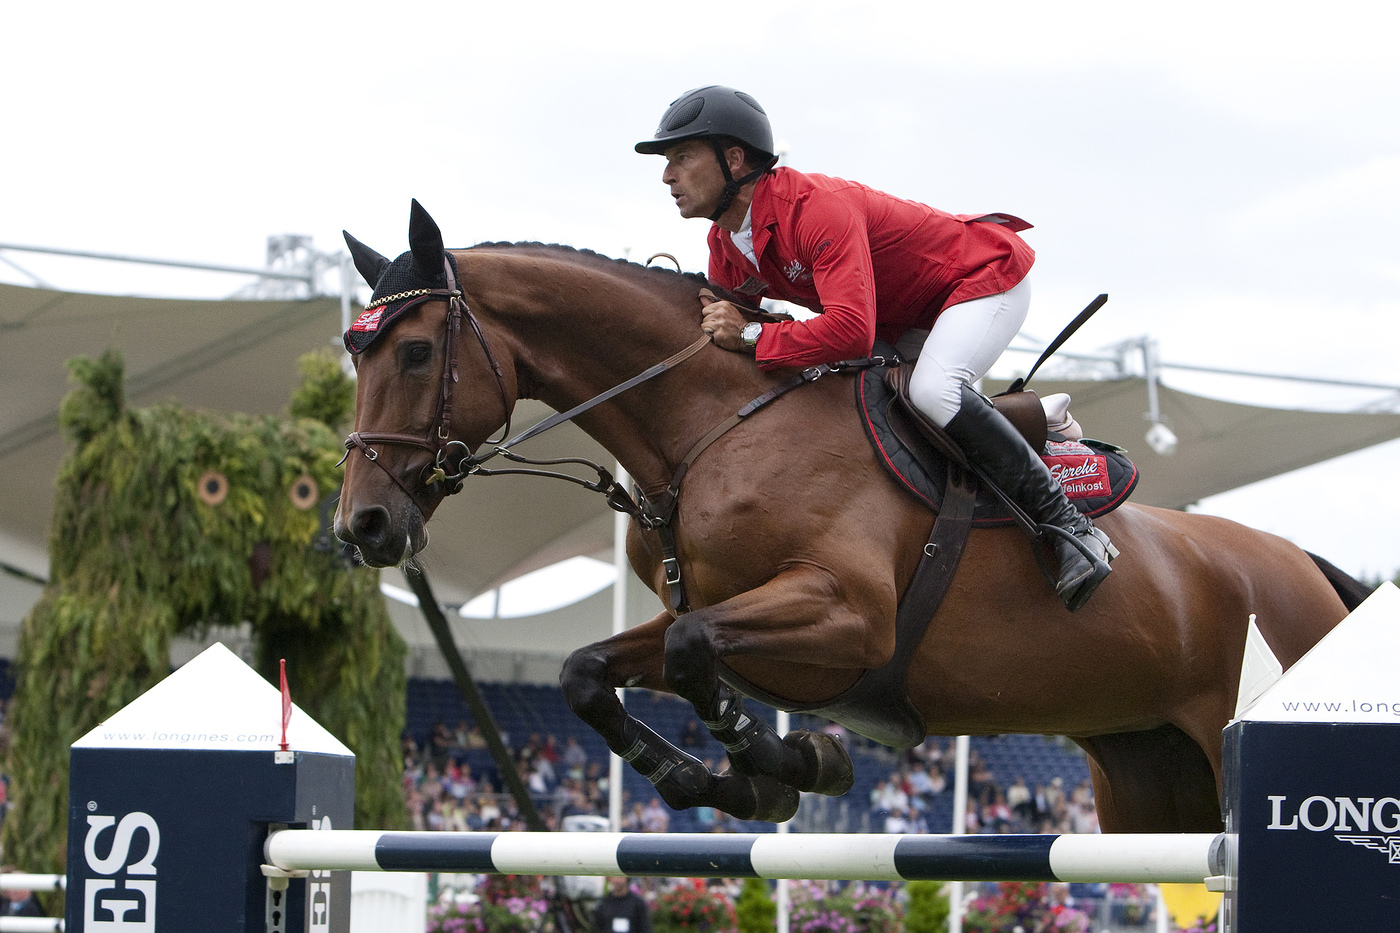 Longines Show Jumping Event: CSIO Dublin - The winners of the Longines Press Award for Elegance 6